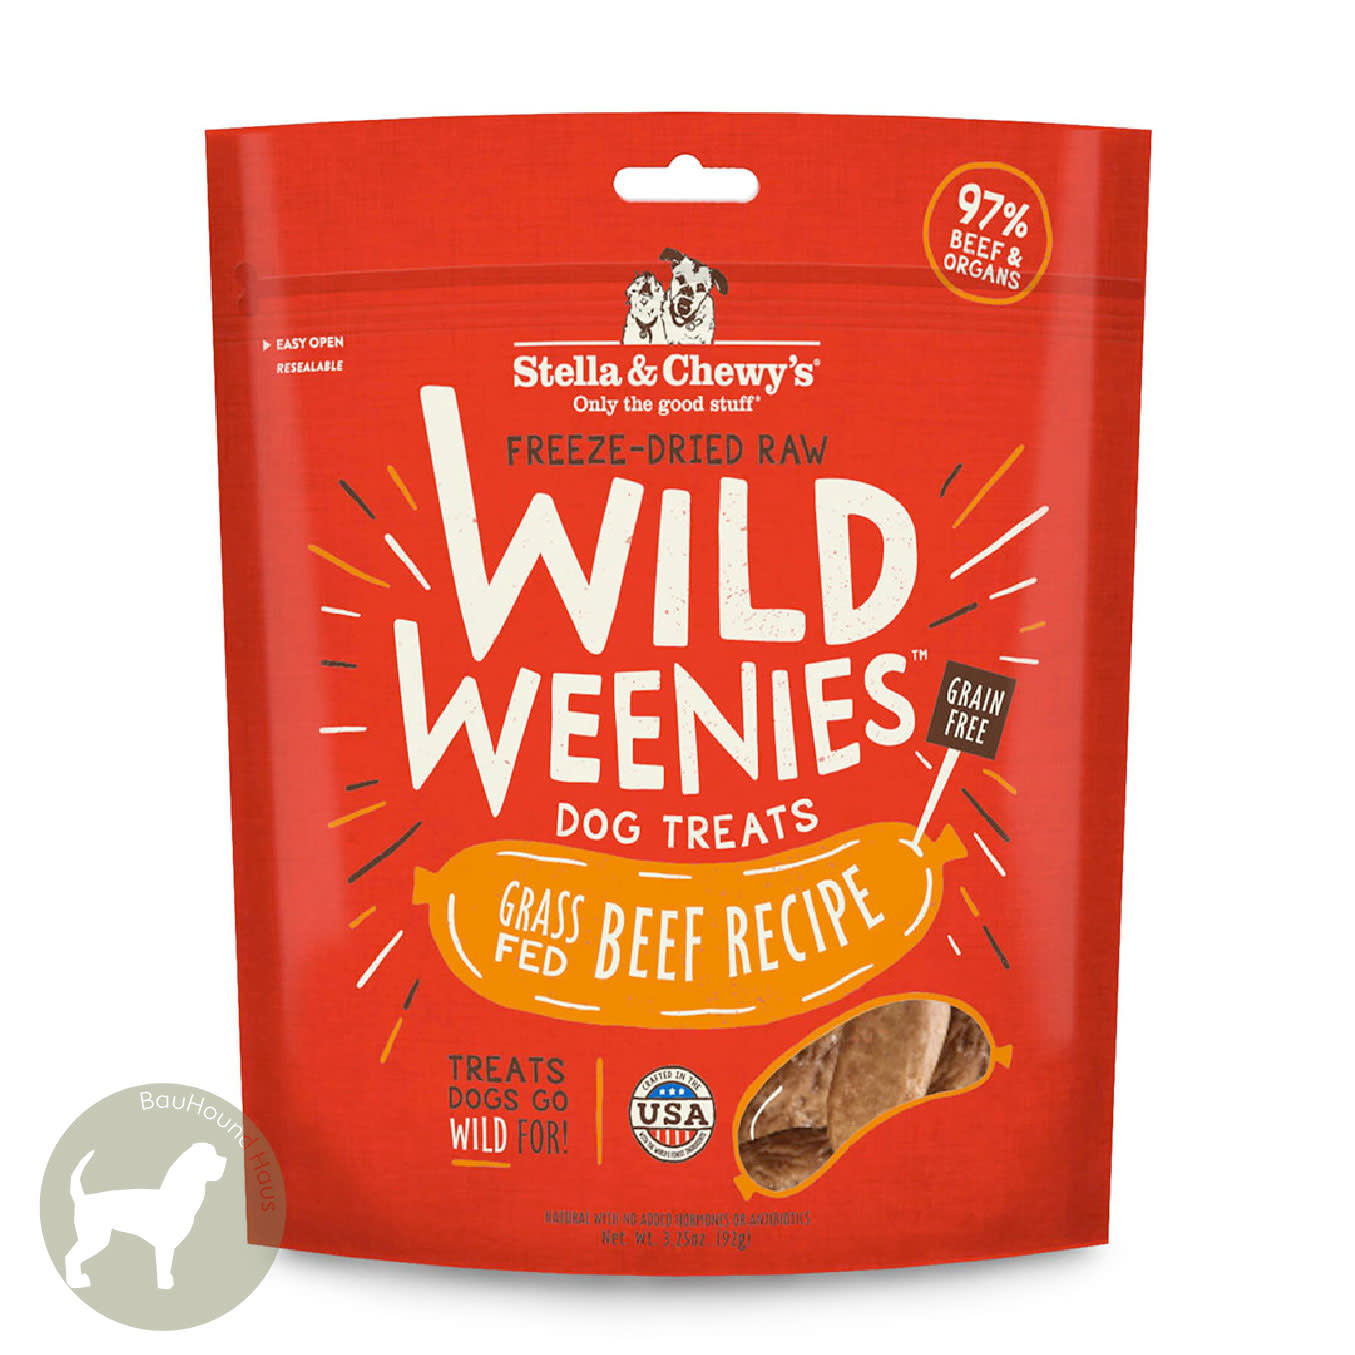 Stella & Chewy's Stella & Chewy's Wild Weenies Dog Treat Grass Fed Beef Recipe, 92g